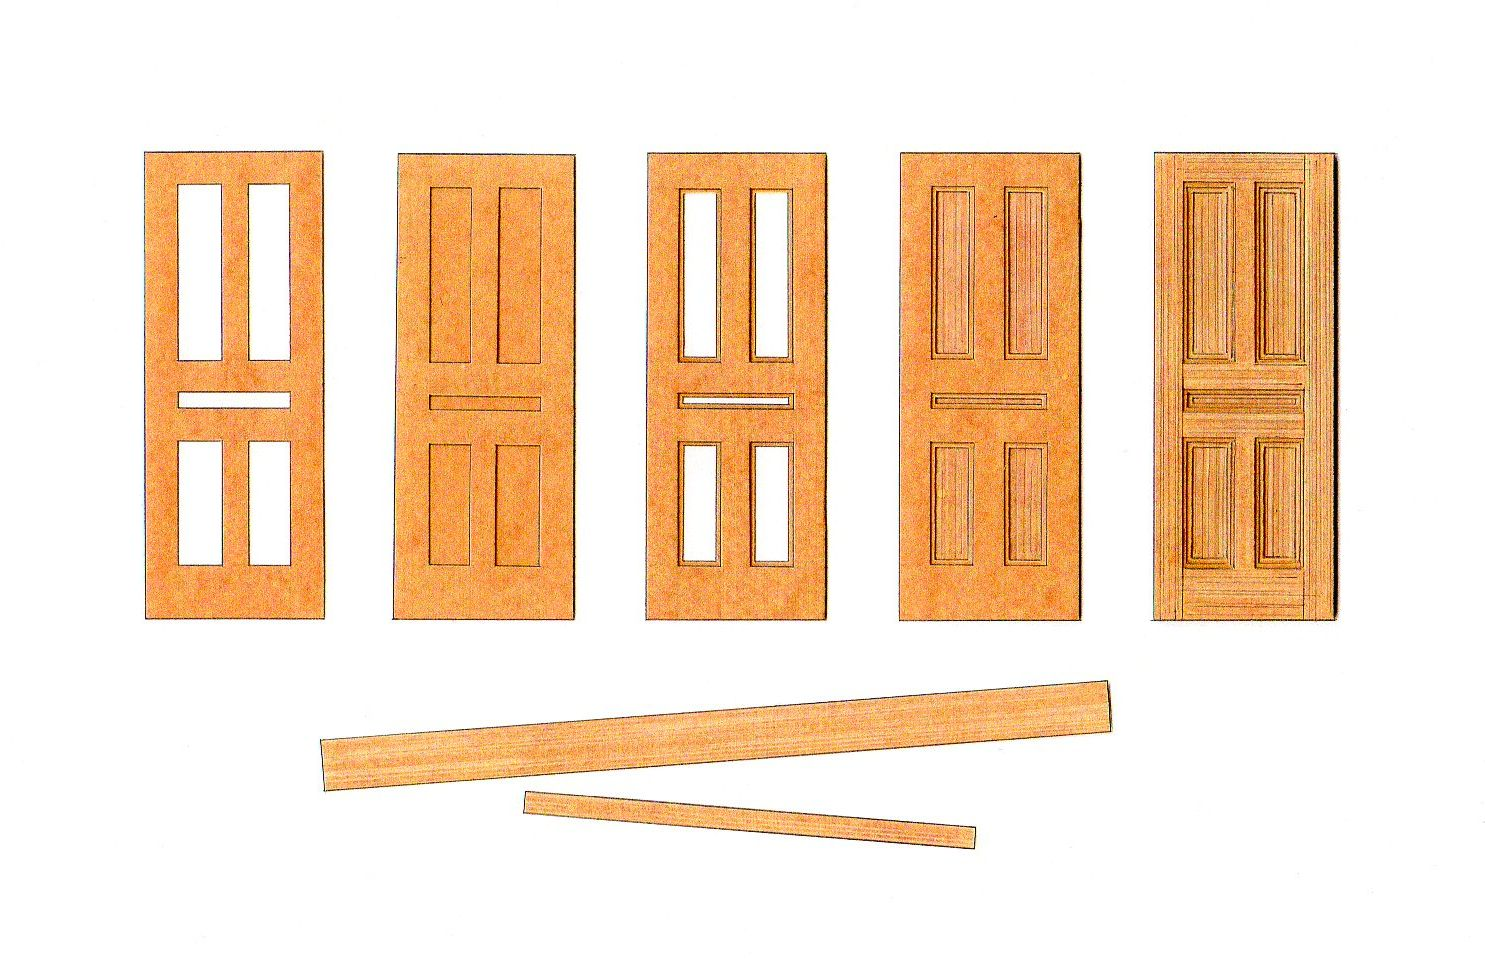 stages of making door using stencil card  sc 1 st  davidneat - WordPress.com & making a model door in layers | davidneat pezcame.com